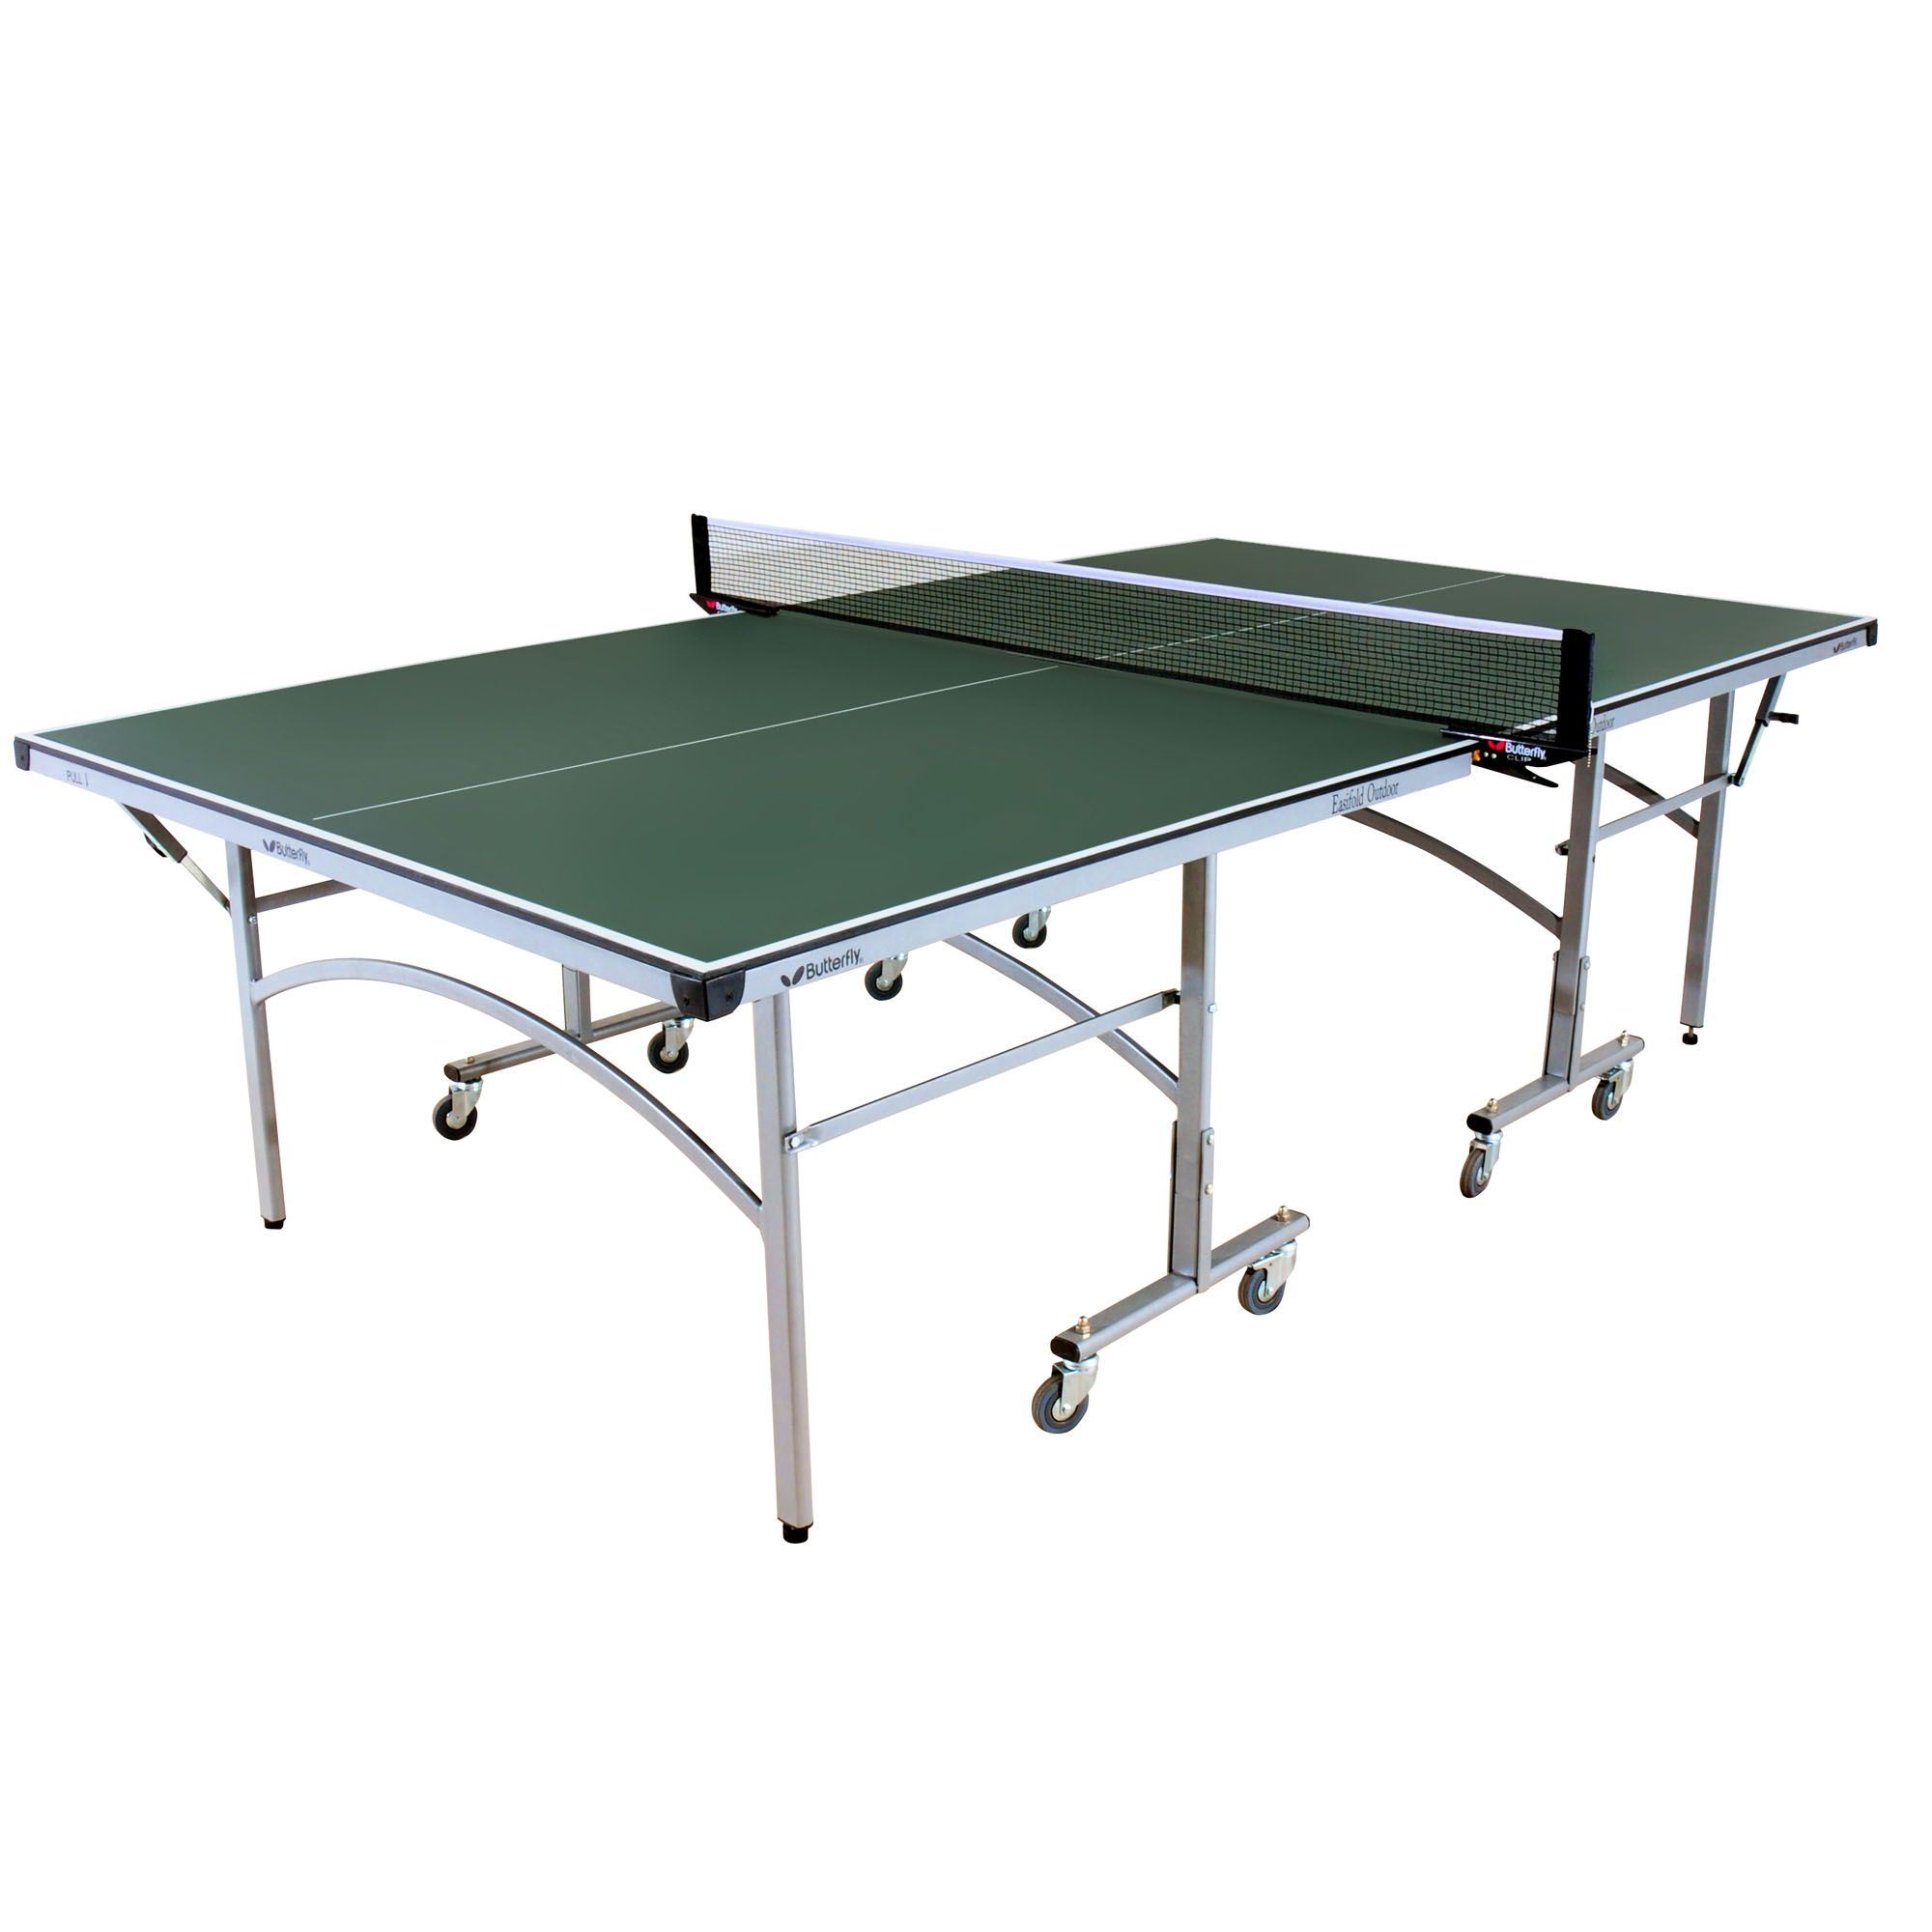 Butterfly easifold outdoor table tennis table - Butterfly tennis de table ...